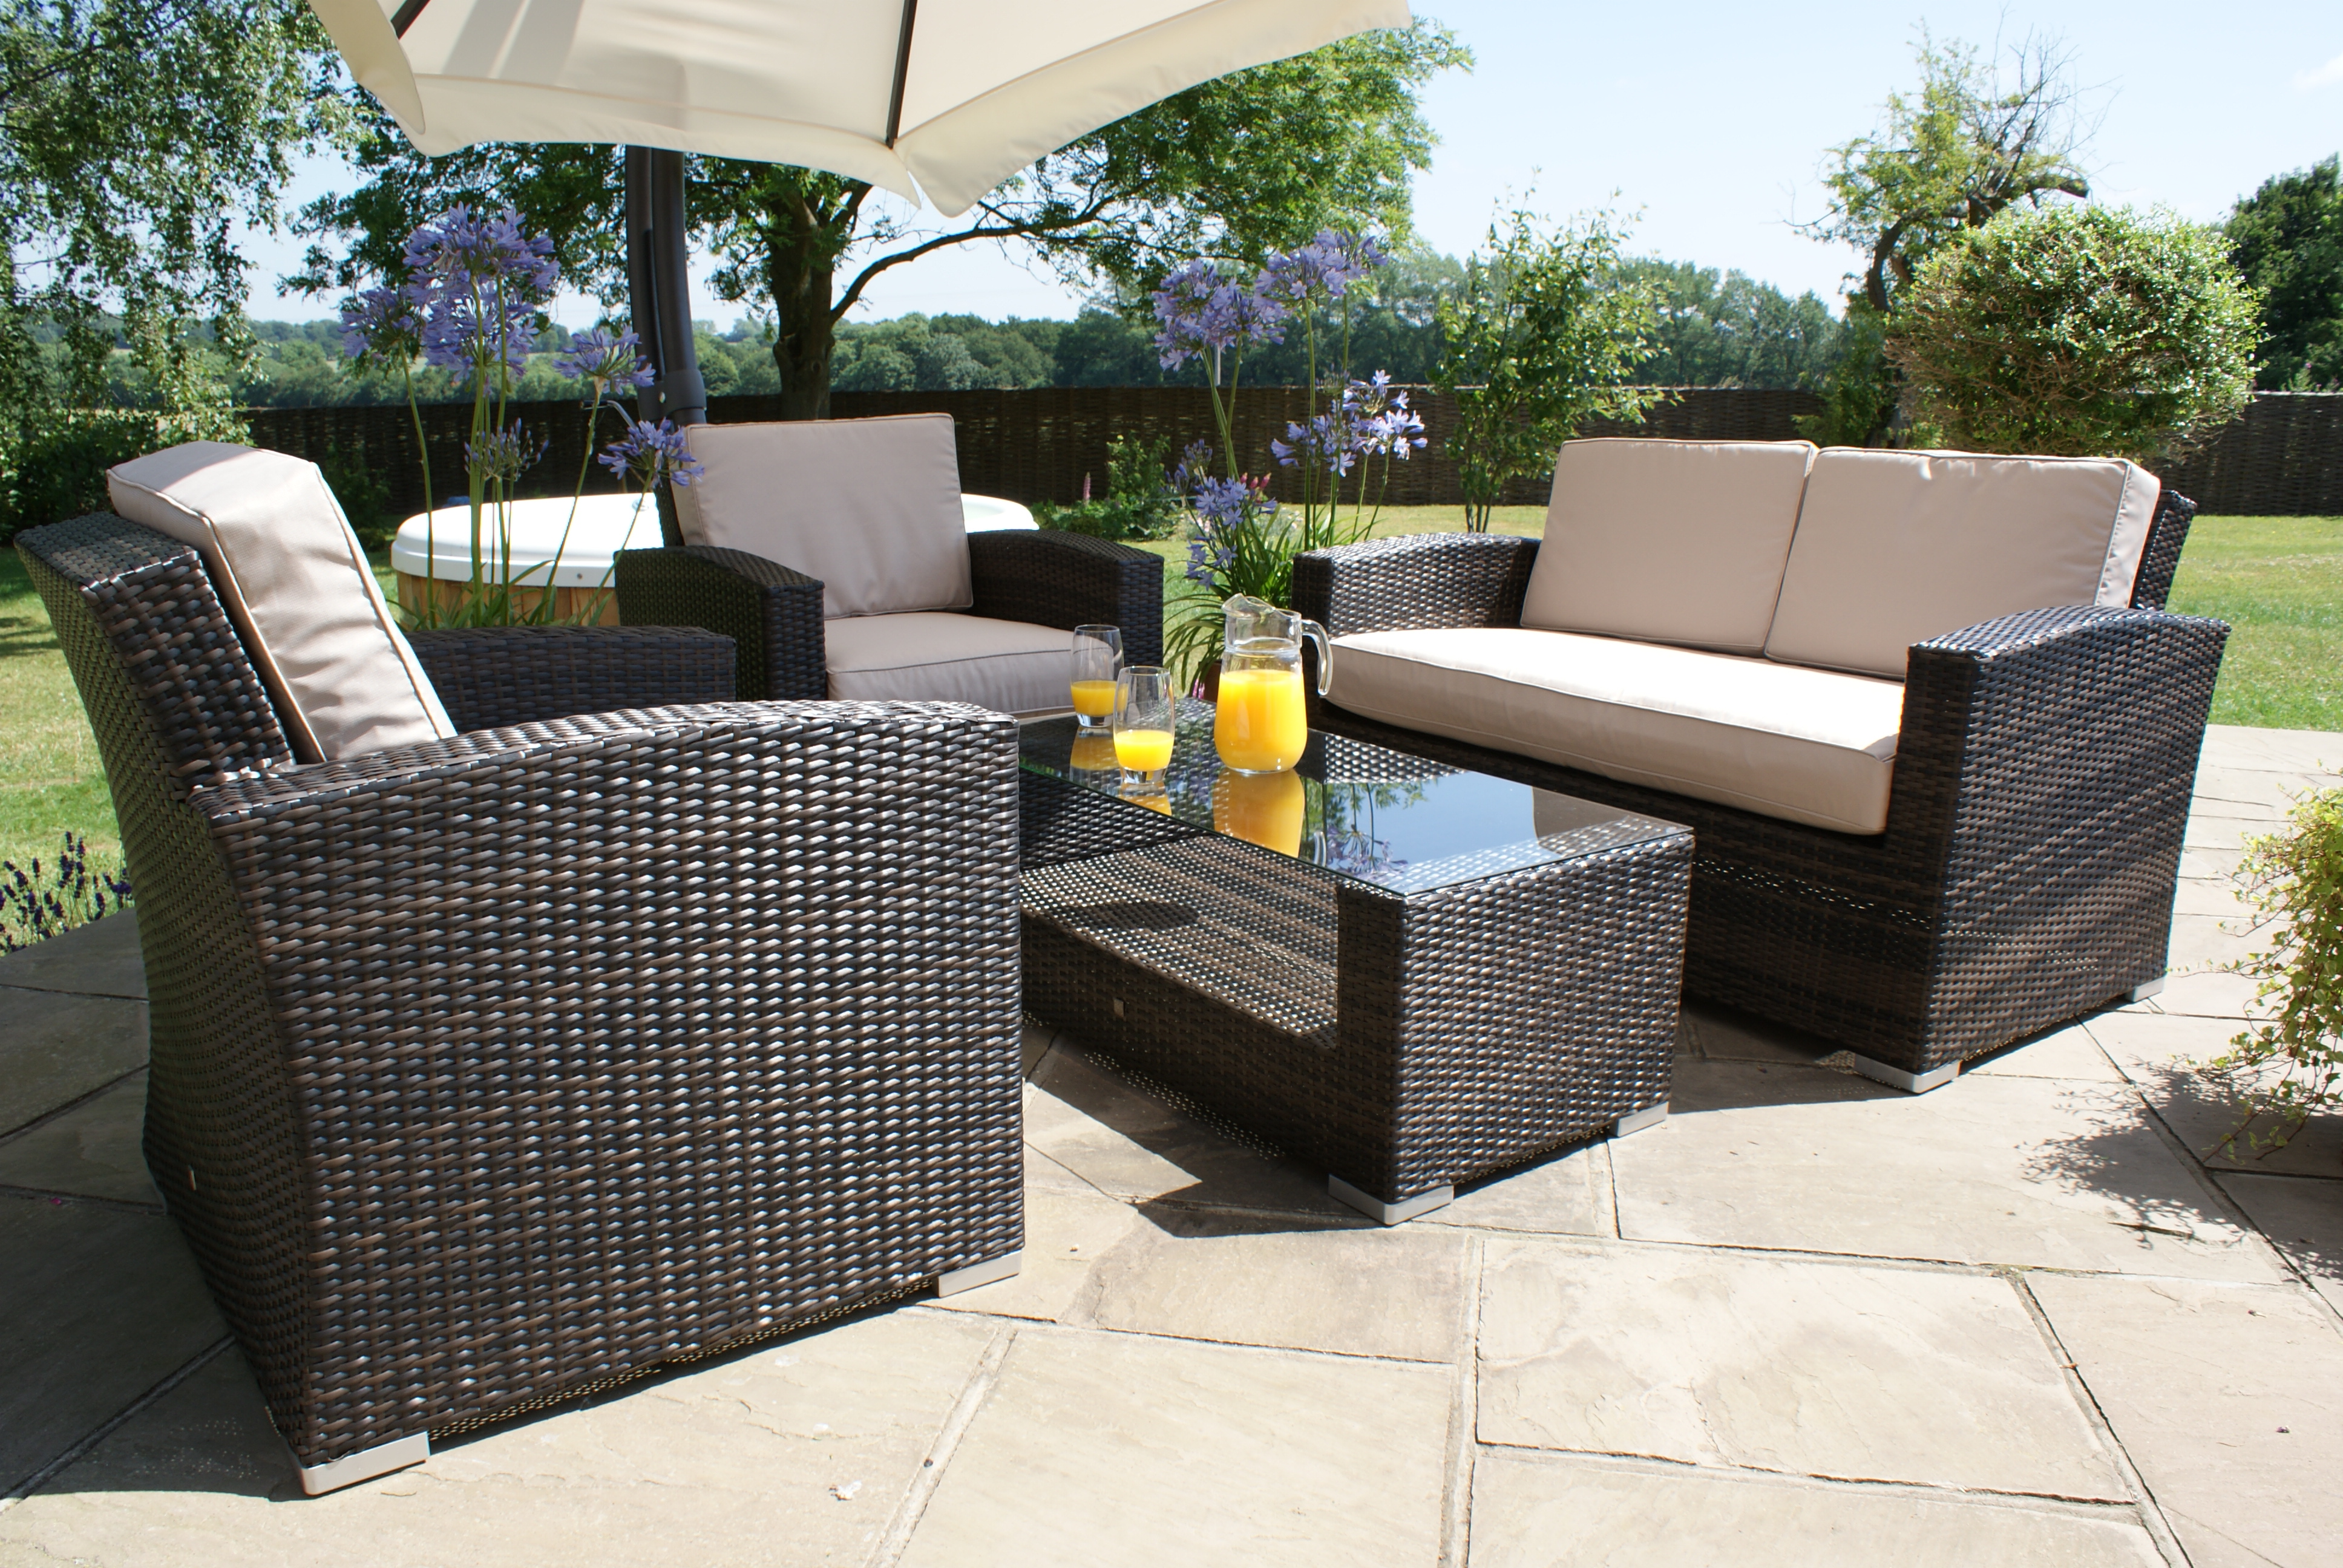 Kingston 2 Seat Outdoor Sofa Set